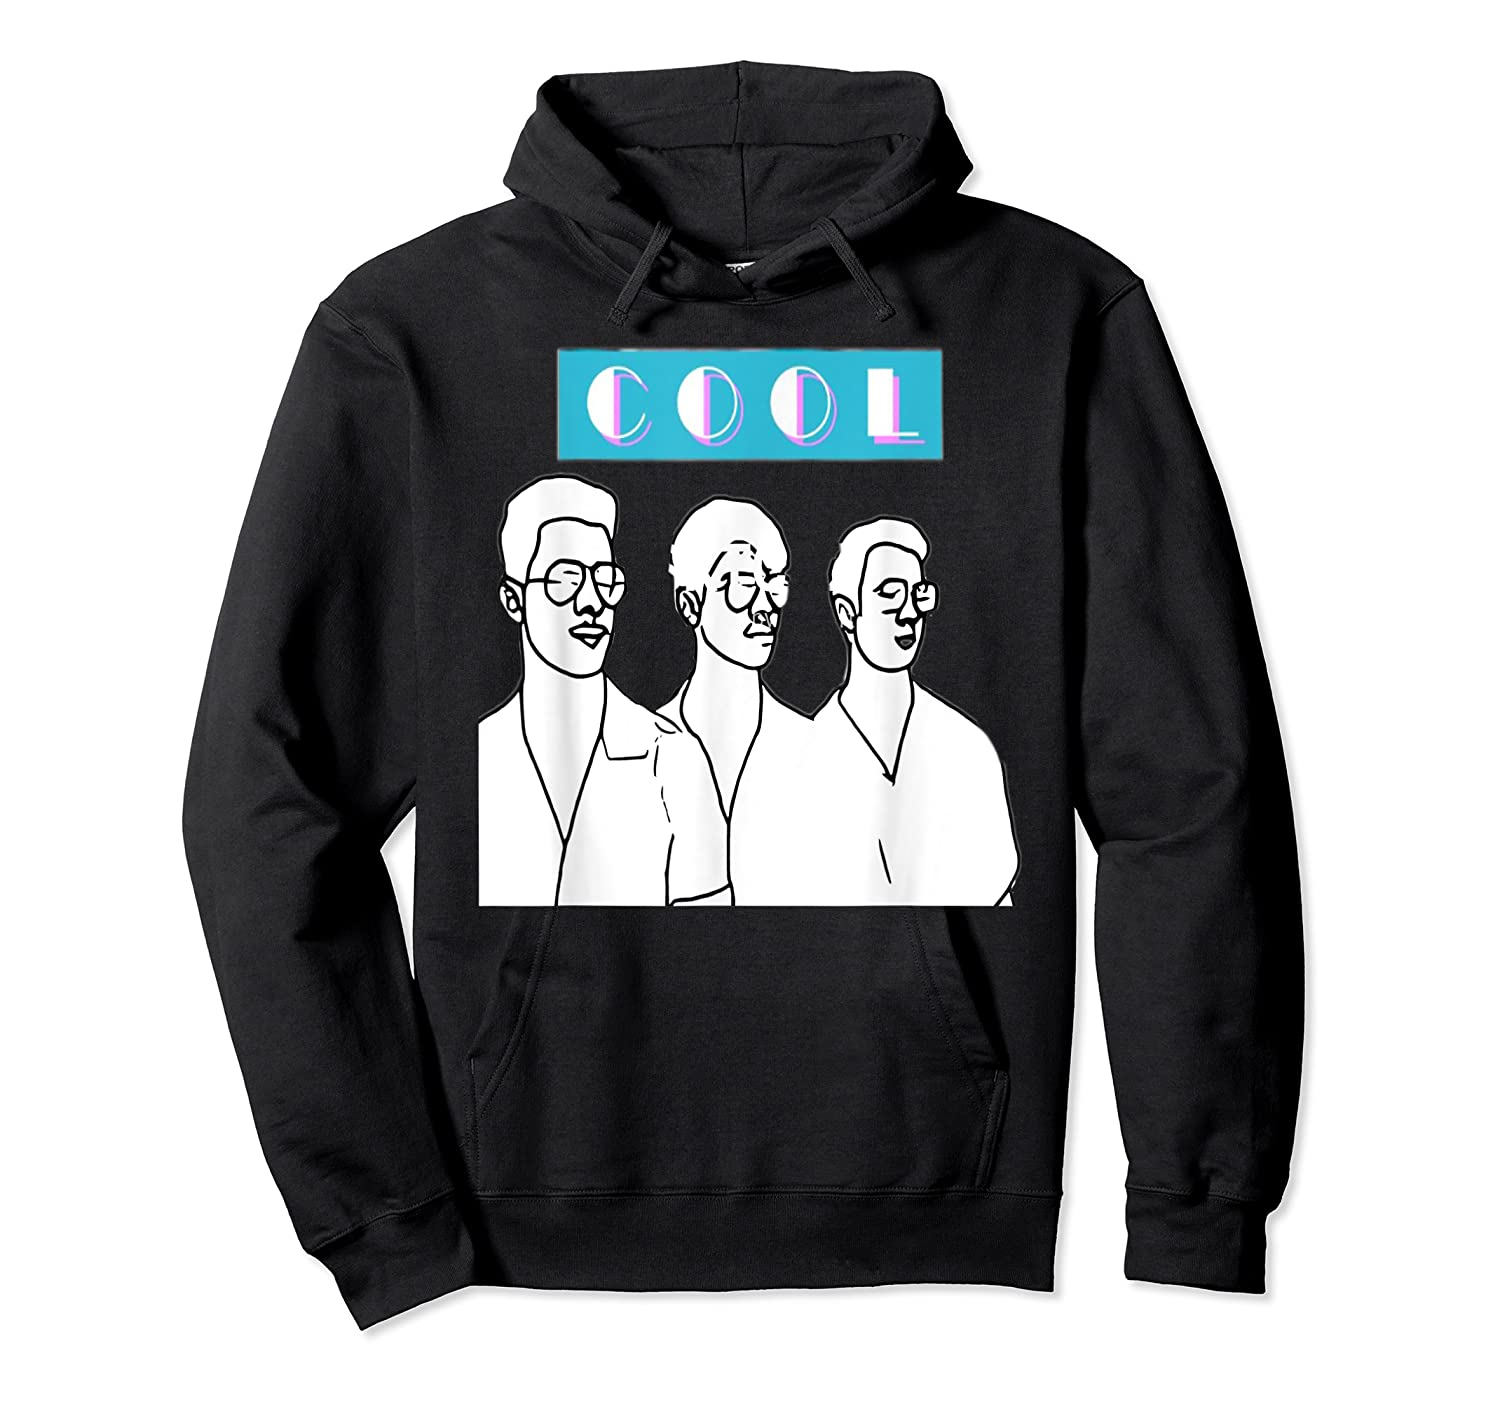 Tour Music T Shirt Cool Happiness Brothers Shirt T Shirt Unisex Pullover Hoodie